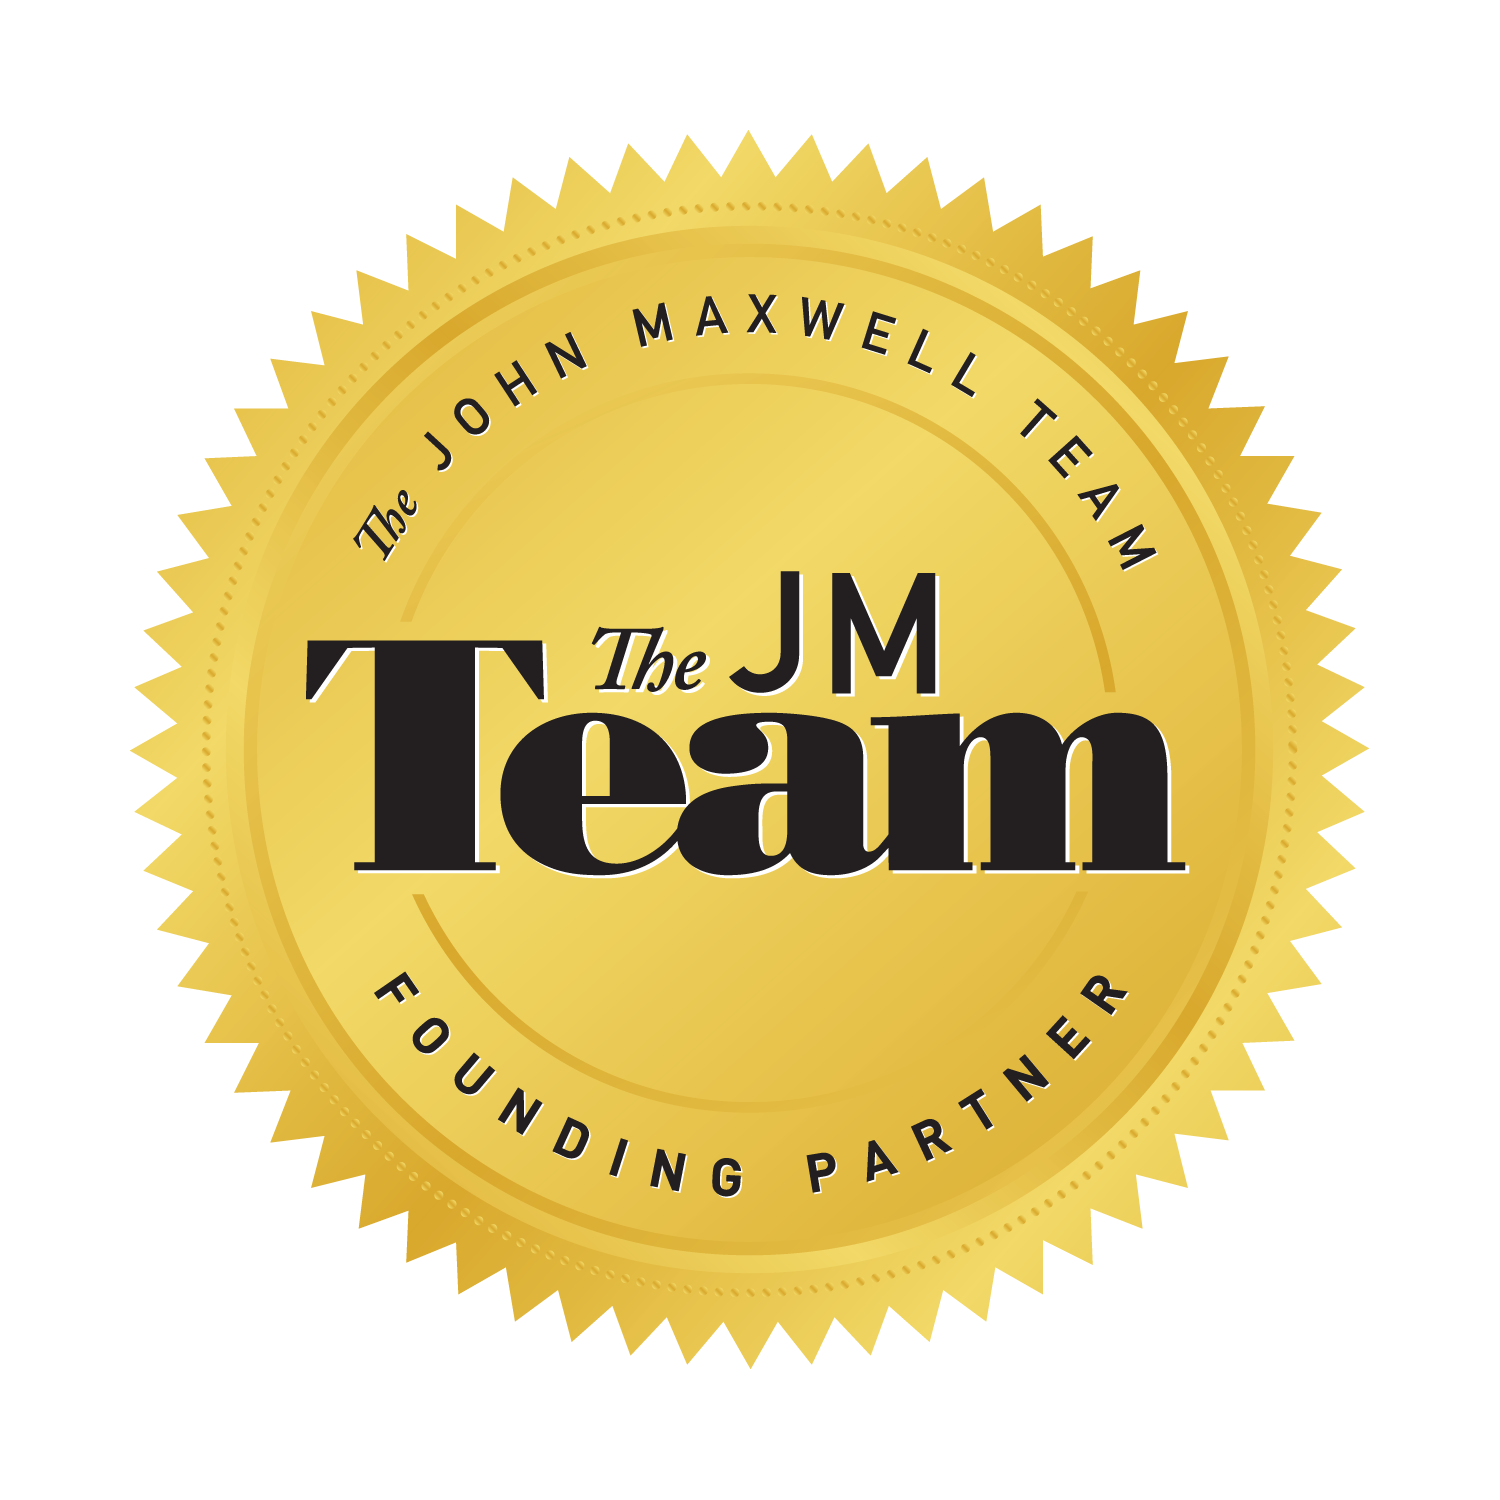 John Maxwell Team Founding Partner | Certified Coach